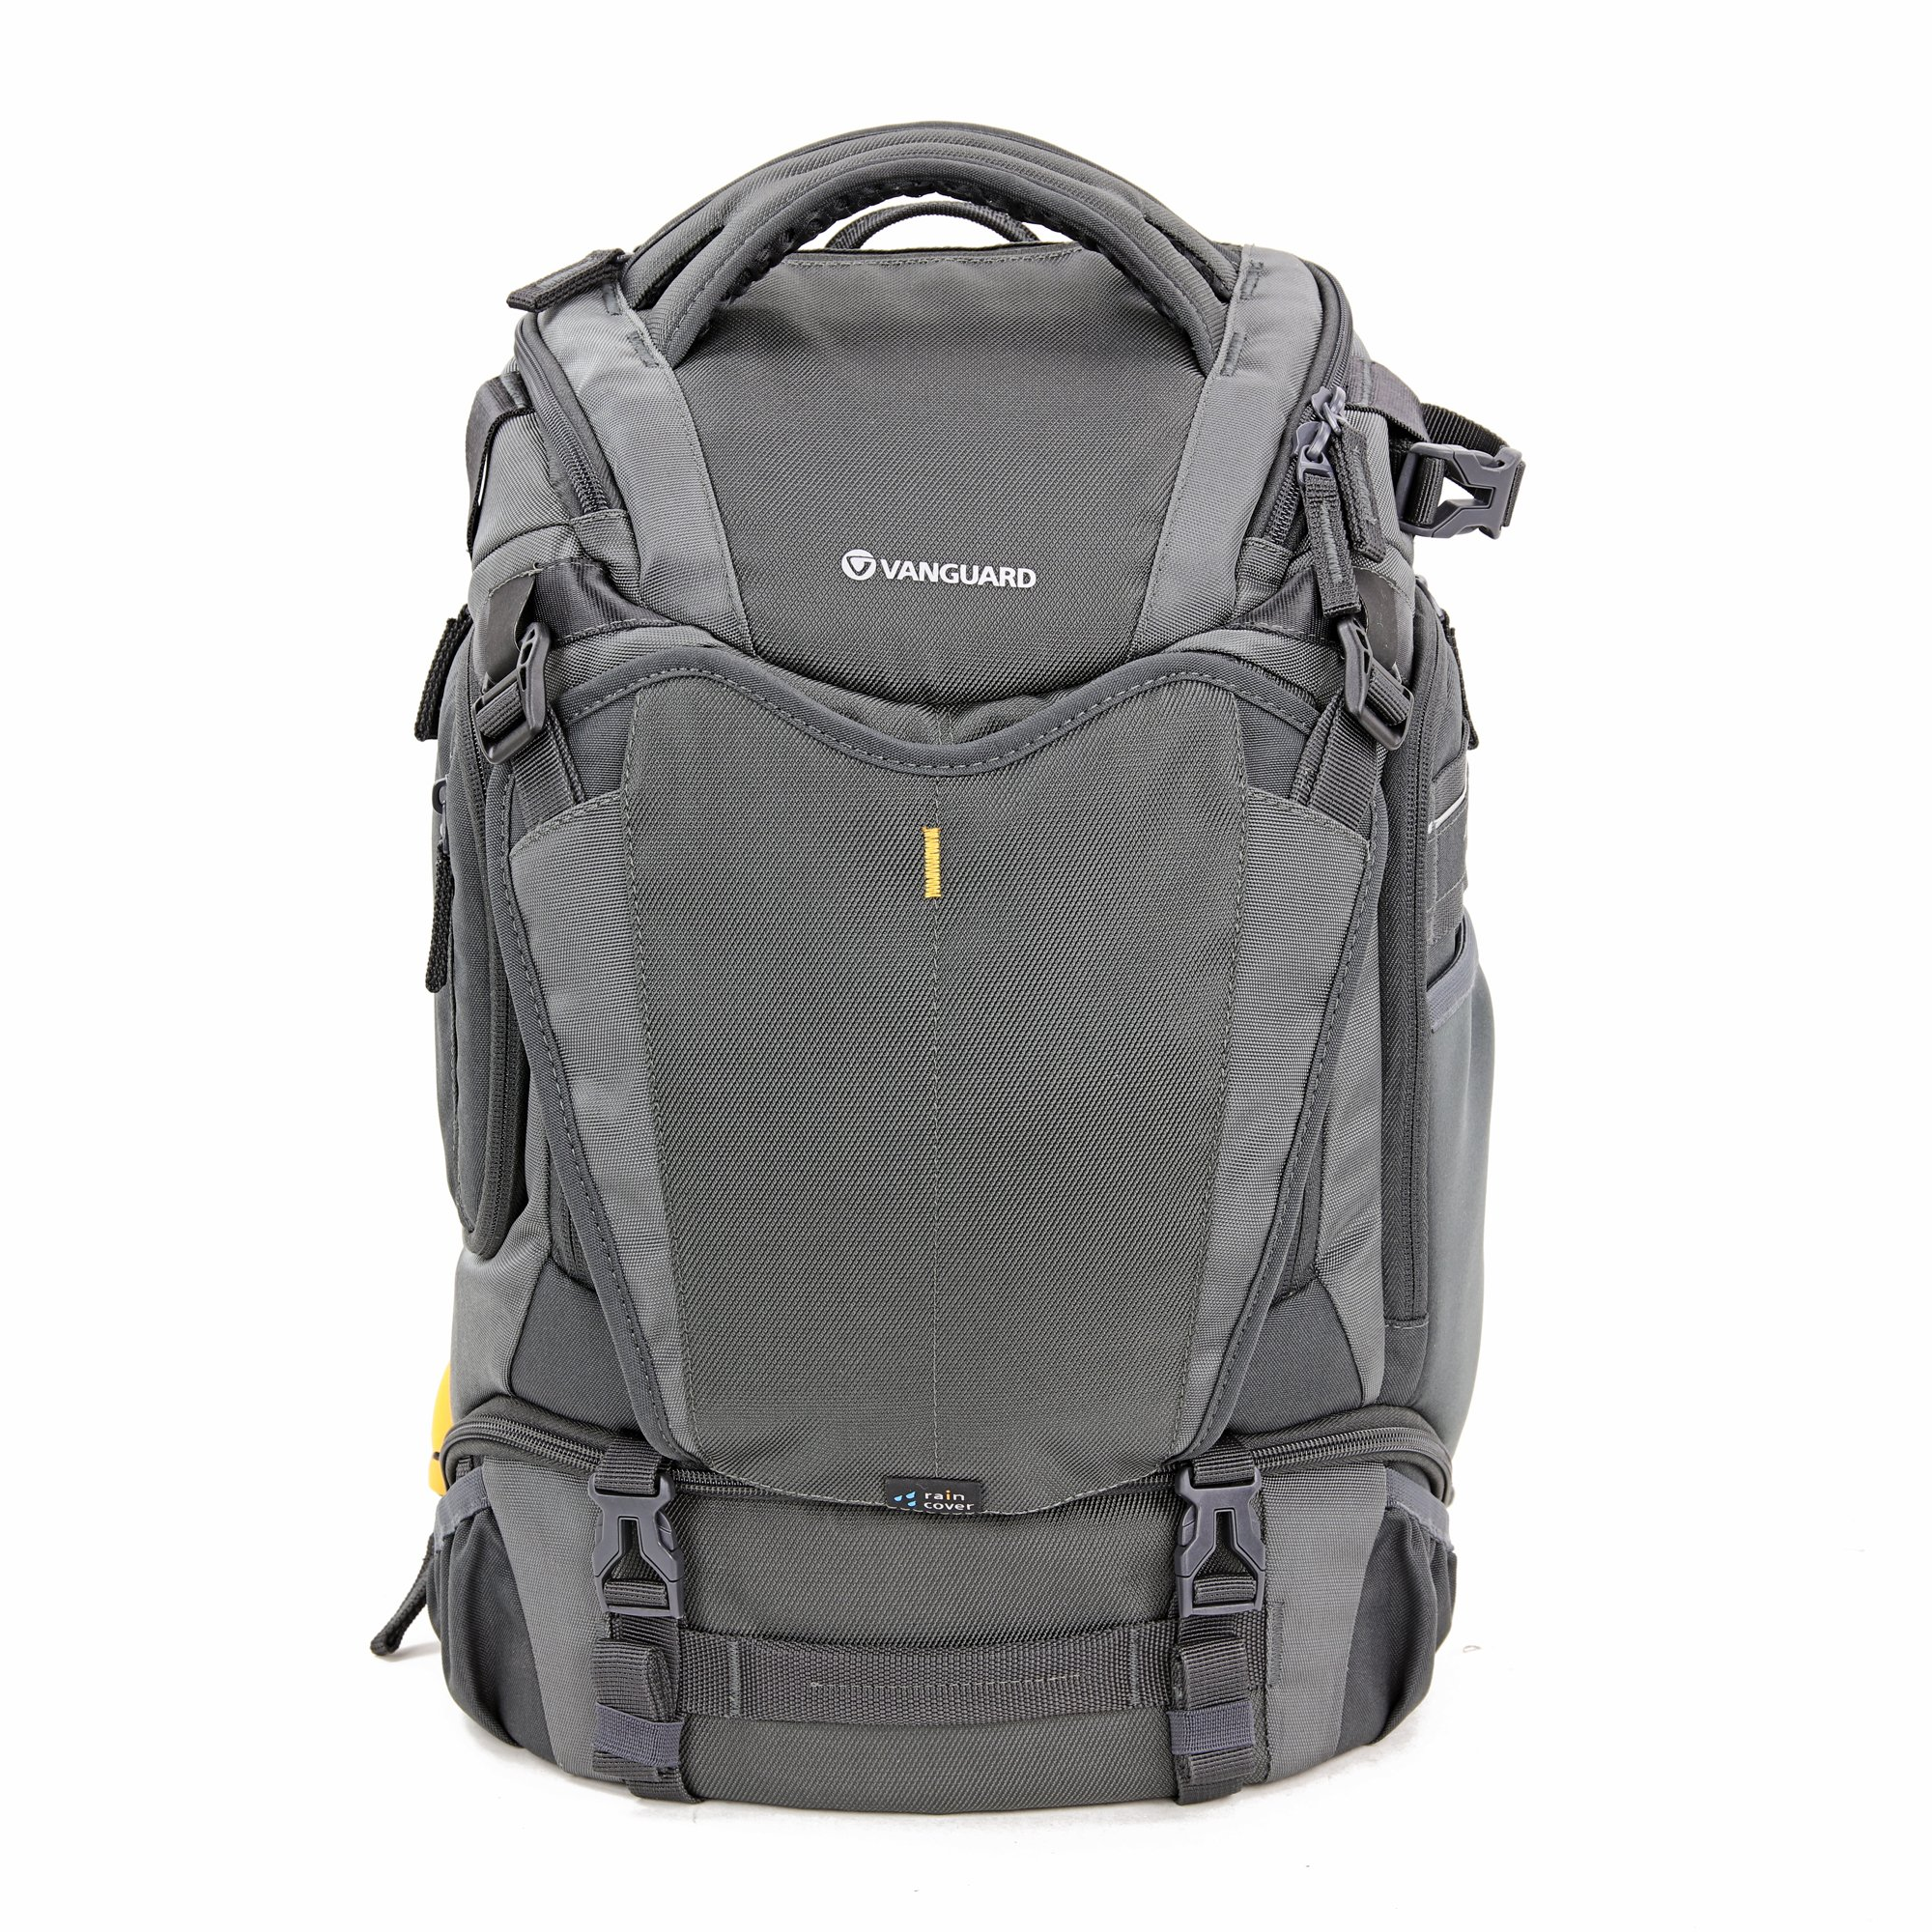 Vanguard Alta Sky 45D Camera Backpack for Sony, Nikon, Canon, DSLR, Drones, Grey by Vanguard